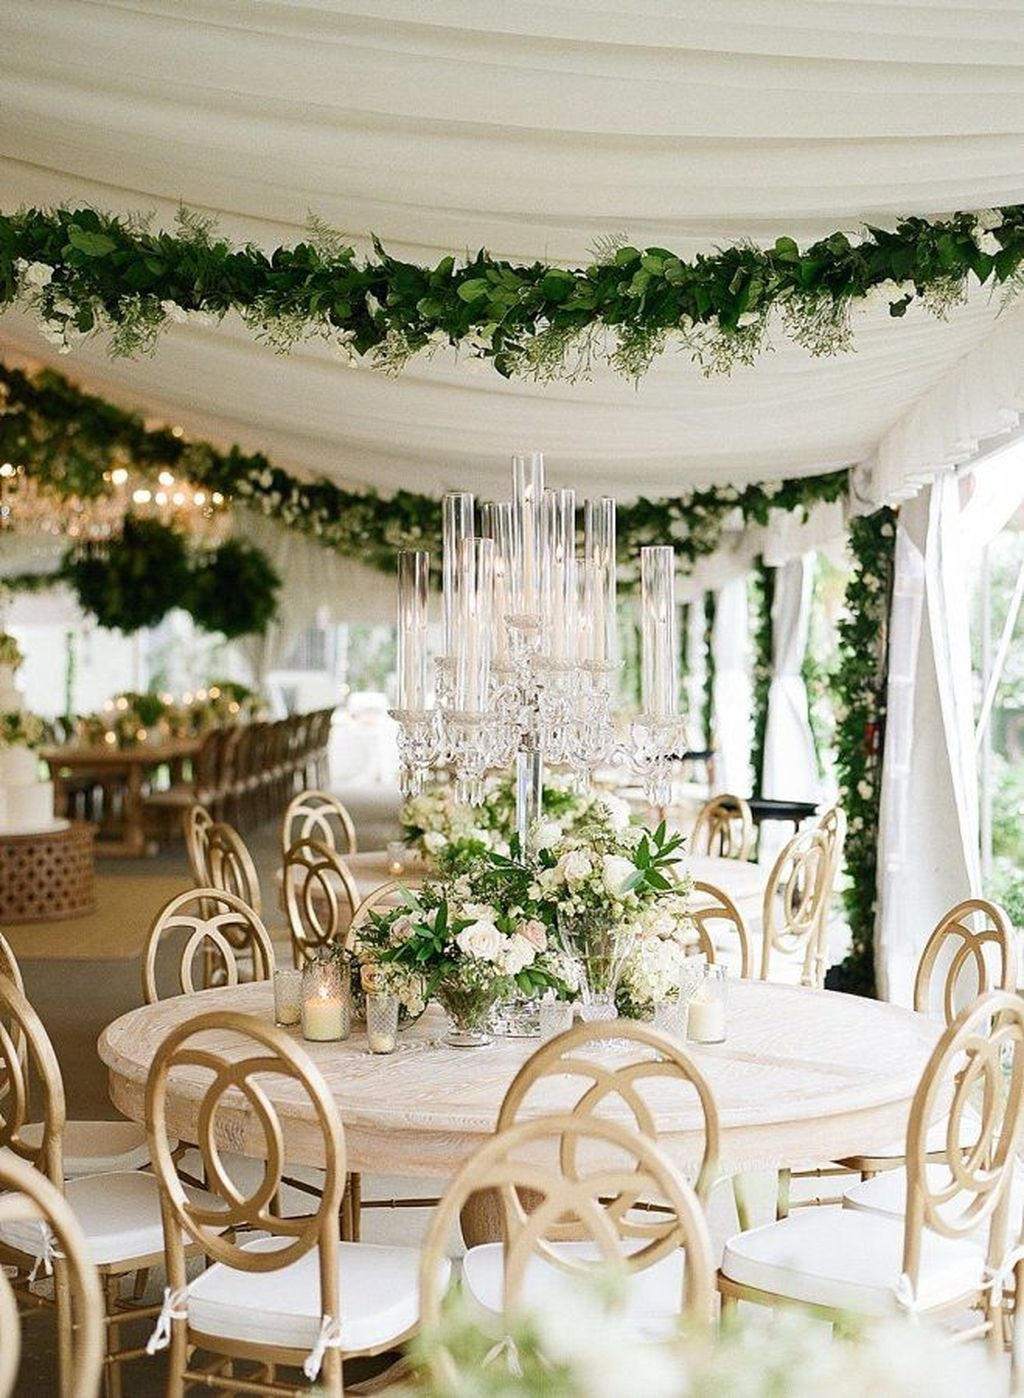 Hottest Wedding Decorations Ideas On A Budget01